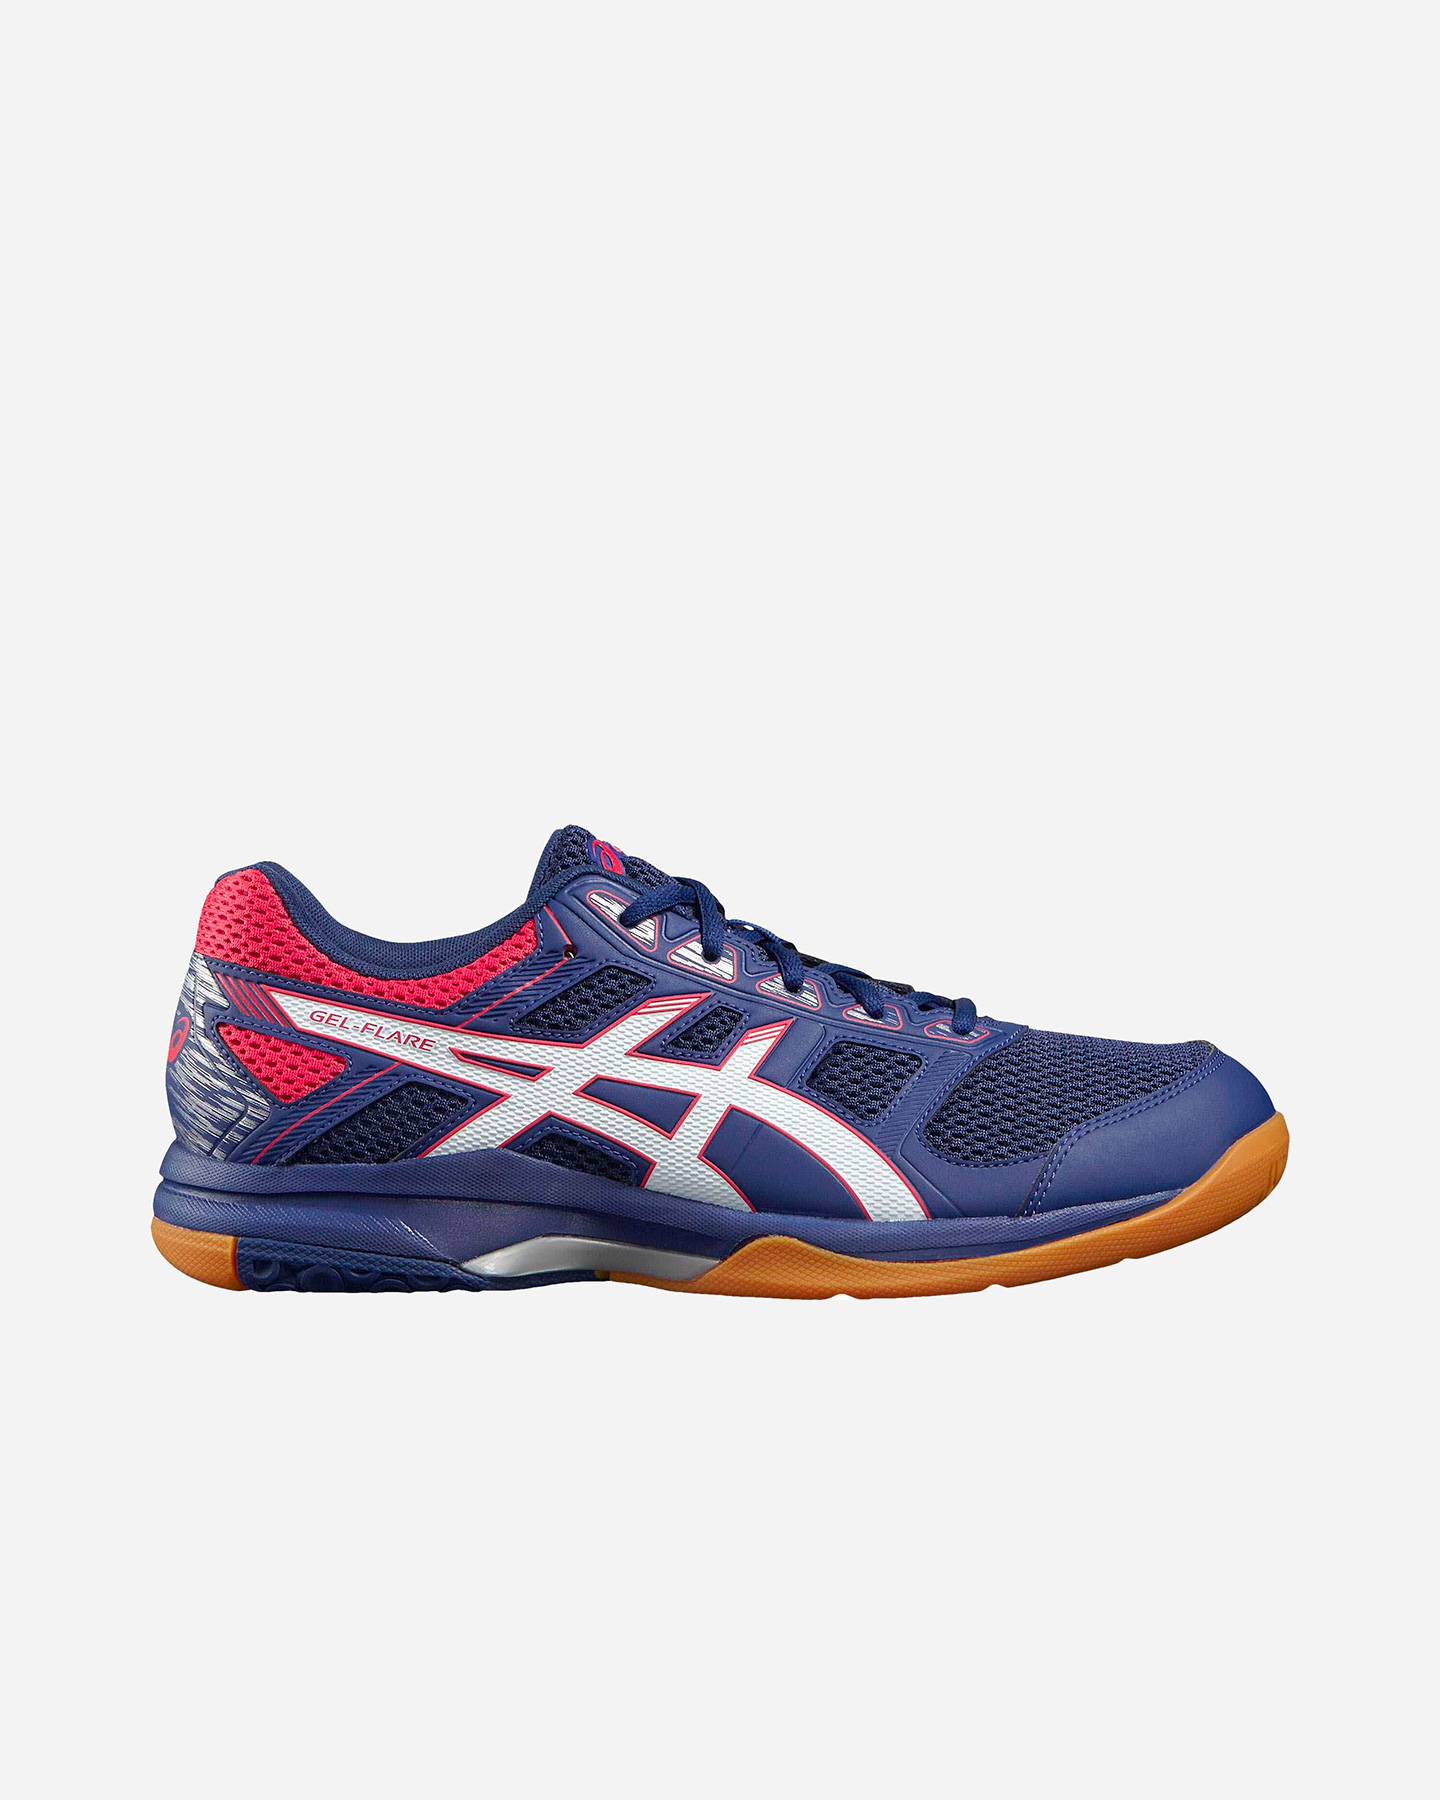 ASICS Donna Volley gel flare 6 w | Donna Volley | ASICS